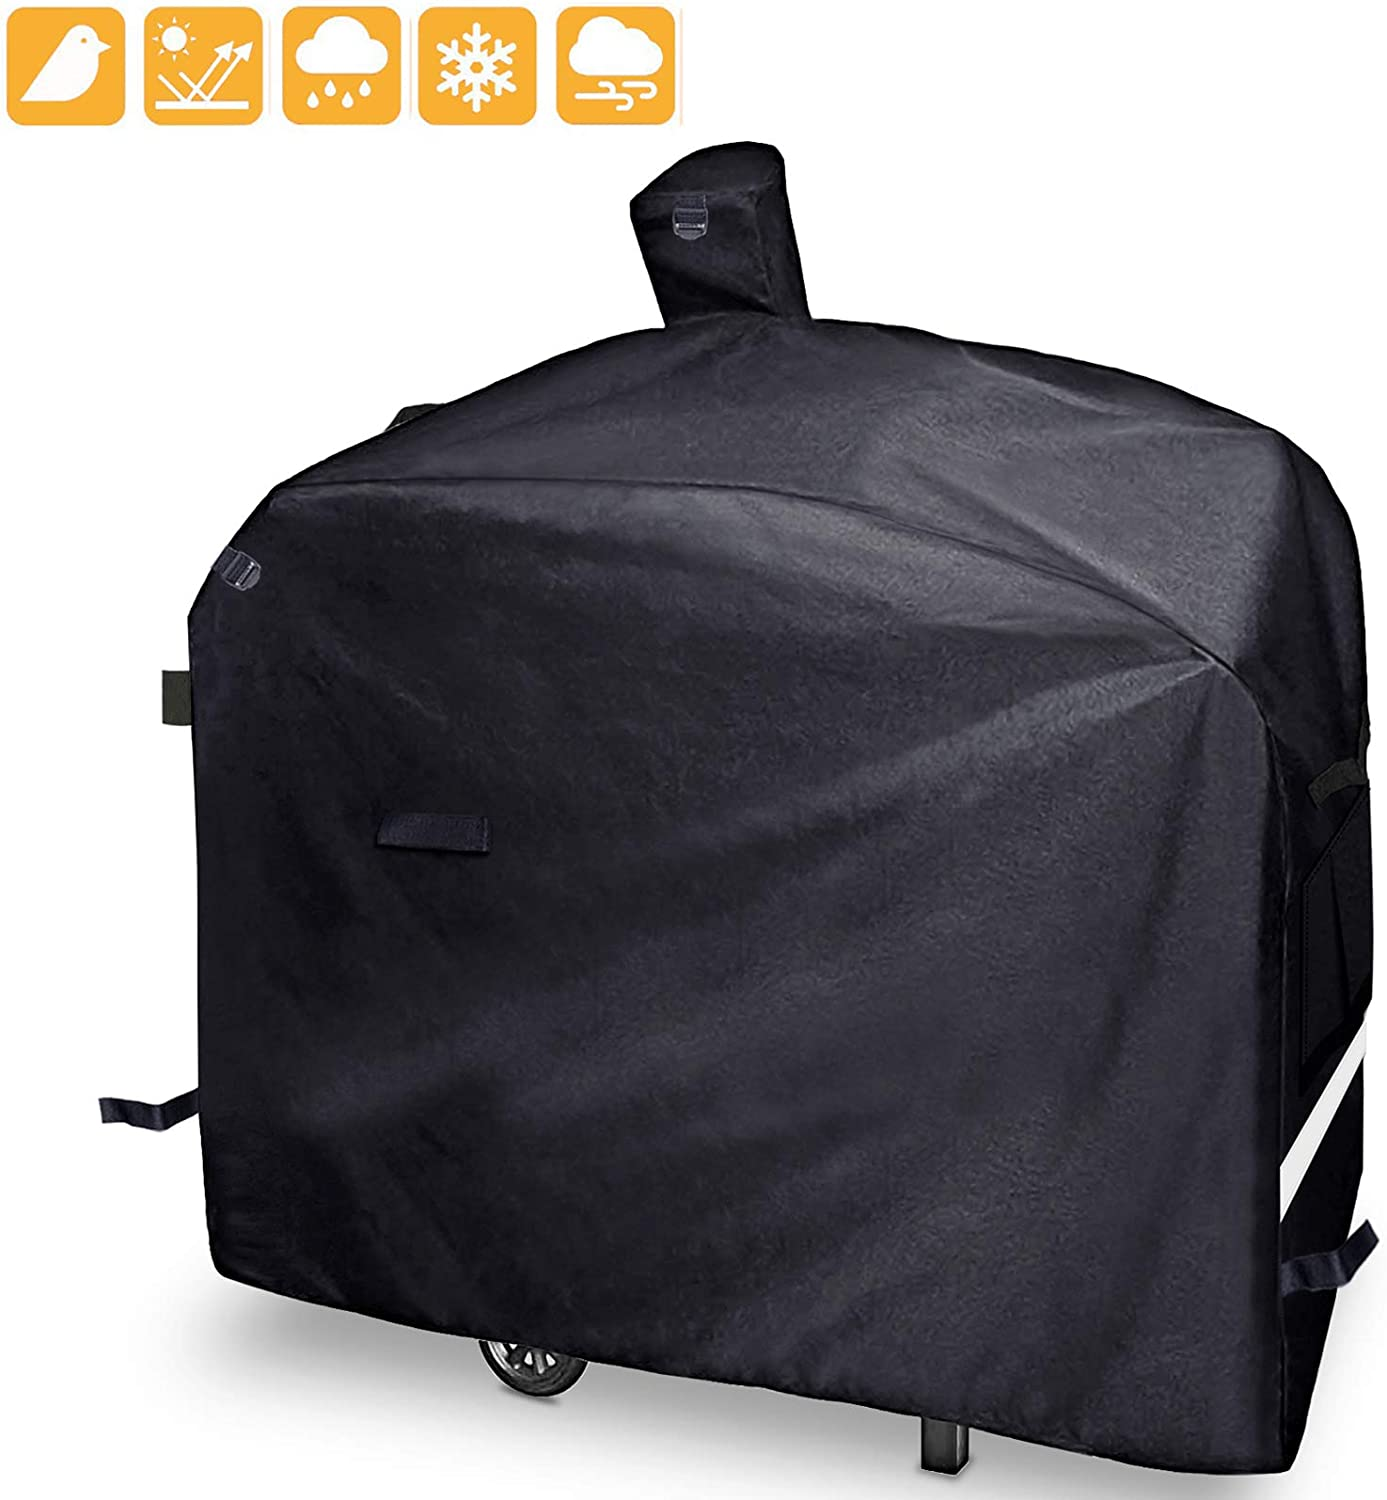 """Grisun Grill Cover for Camp Chef Pellet Grills DLX 24"""", SmokePro 24"""", PG24, PG24LS, PG24S, PG24SE, PG24LTD, SmokePro DLX Woodwind Pellet Grills, Full Length 600D Waterproof Anti-UV Patio BBQ Cover"""